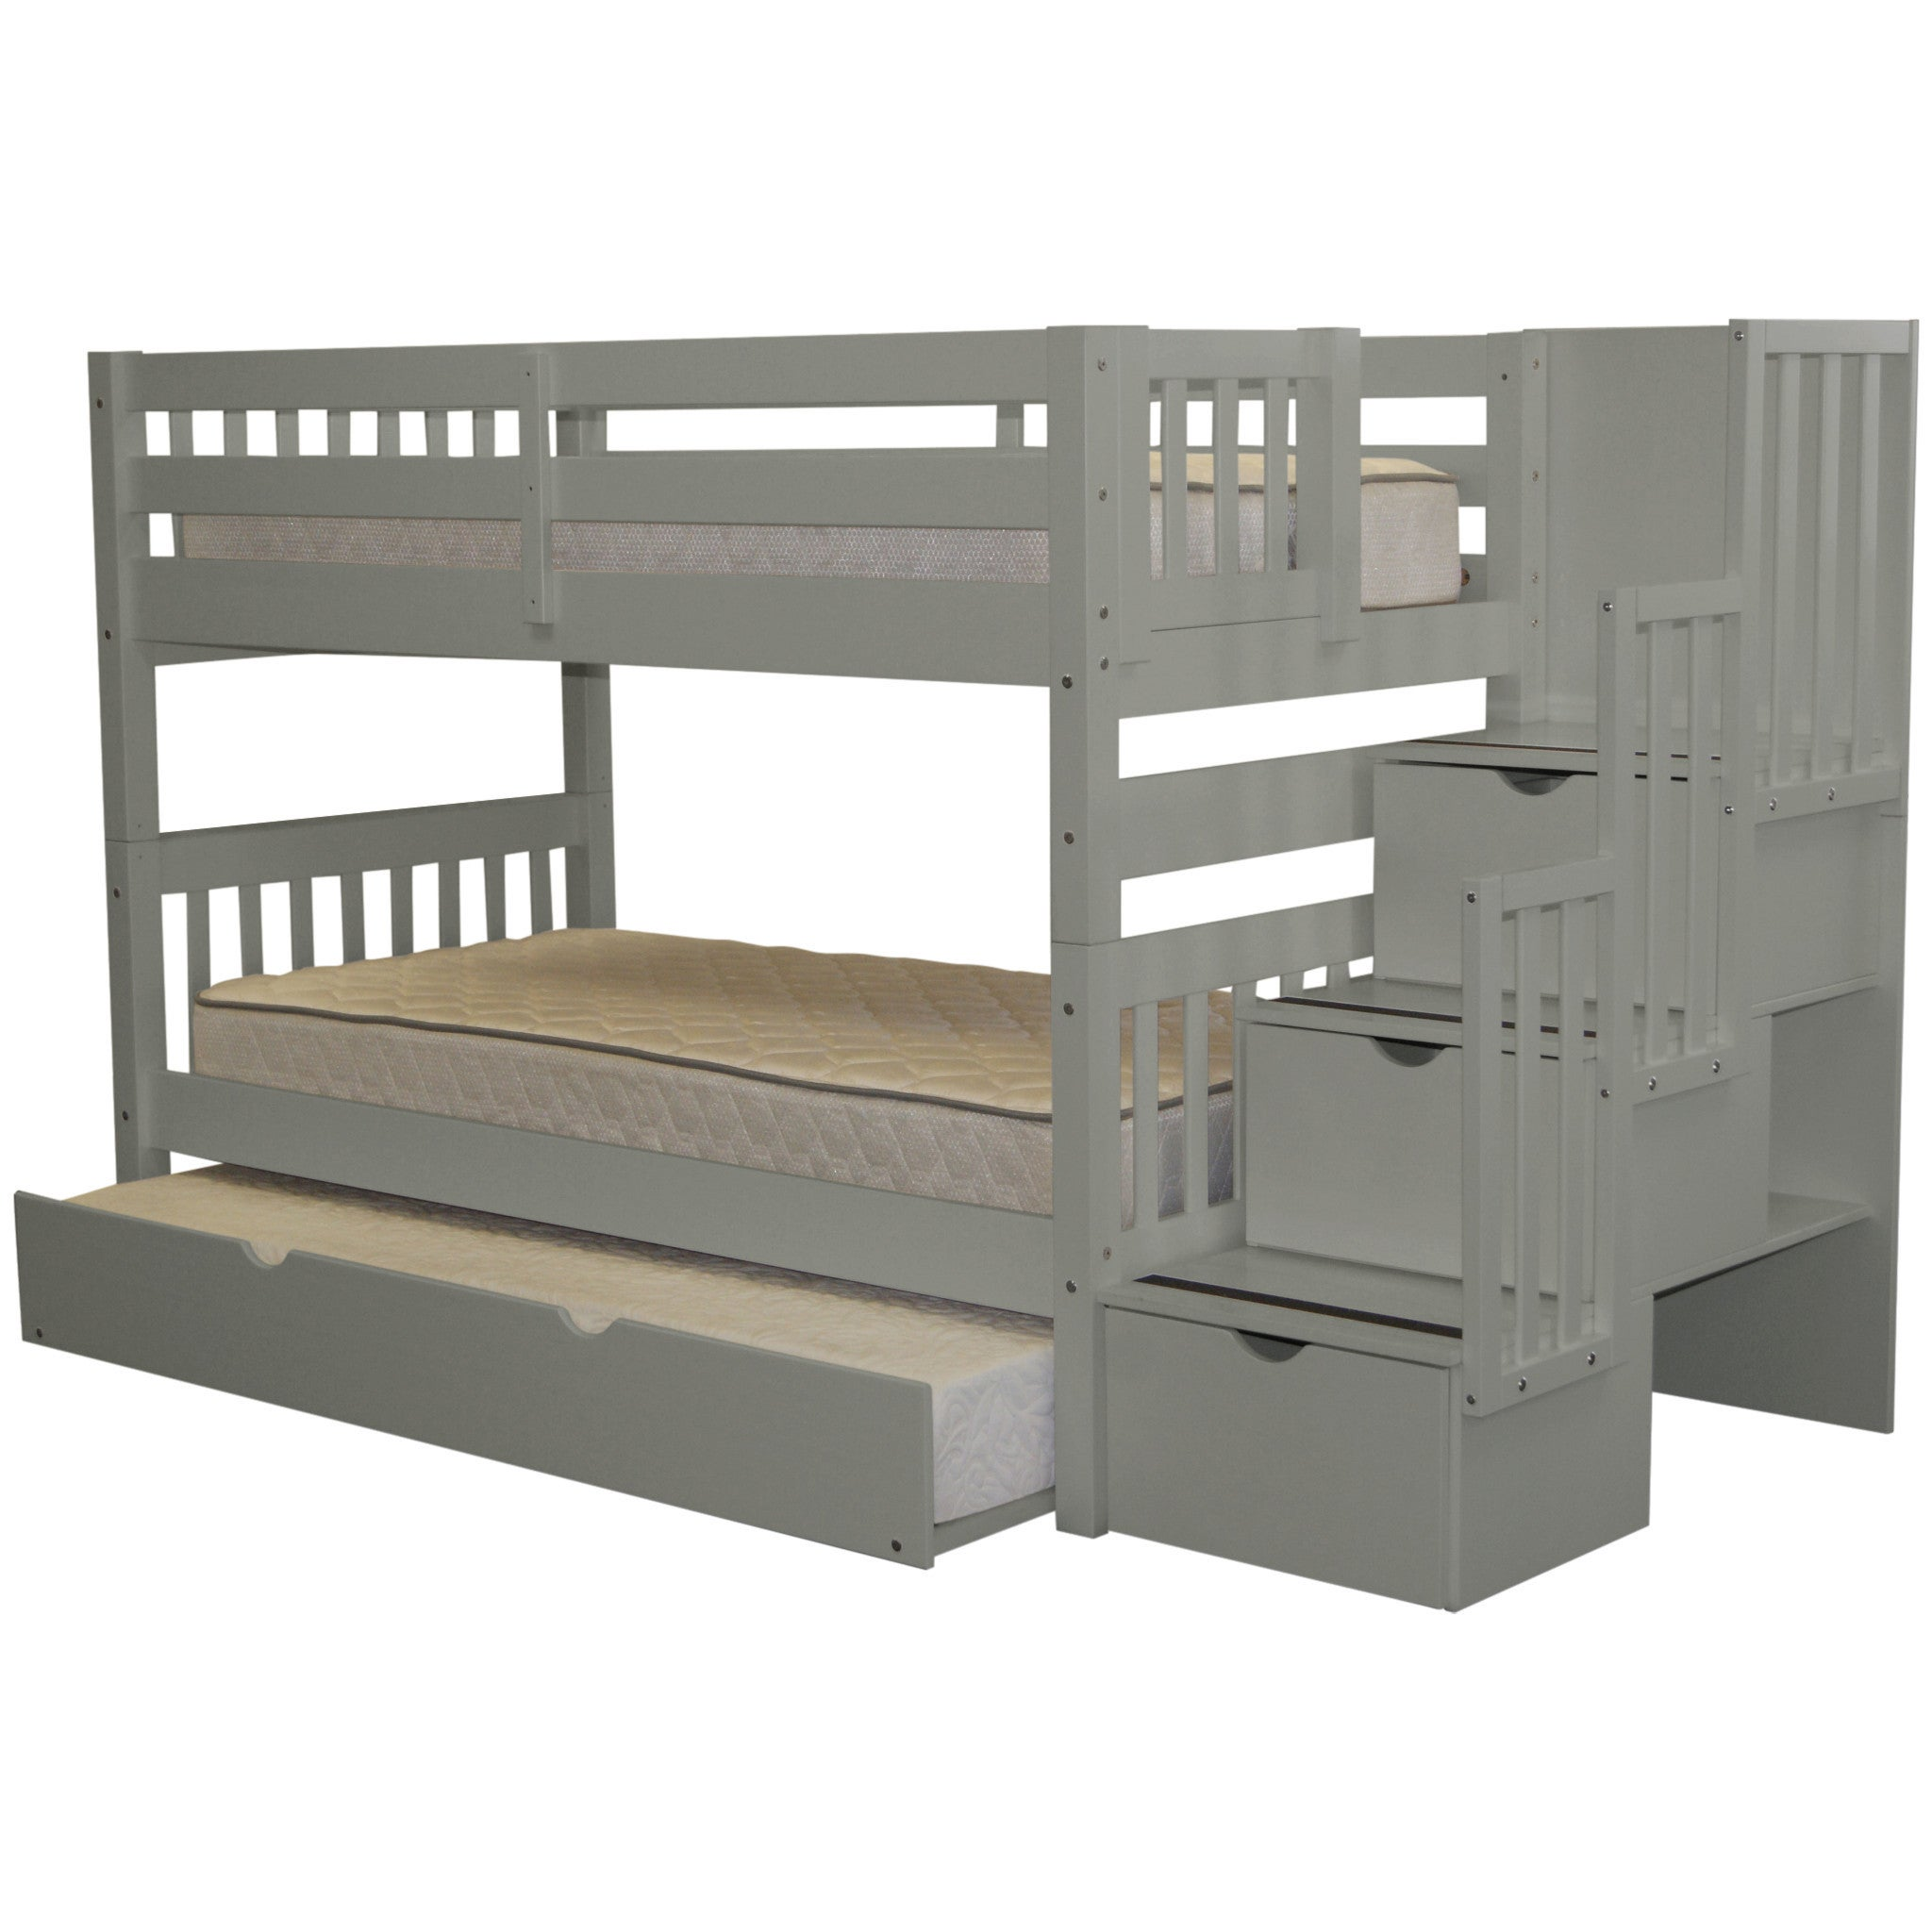 Shop Bedz King Stairway Grey Wood Twin Bunk Bed With 3 Drawer Step